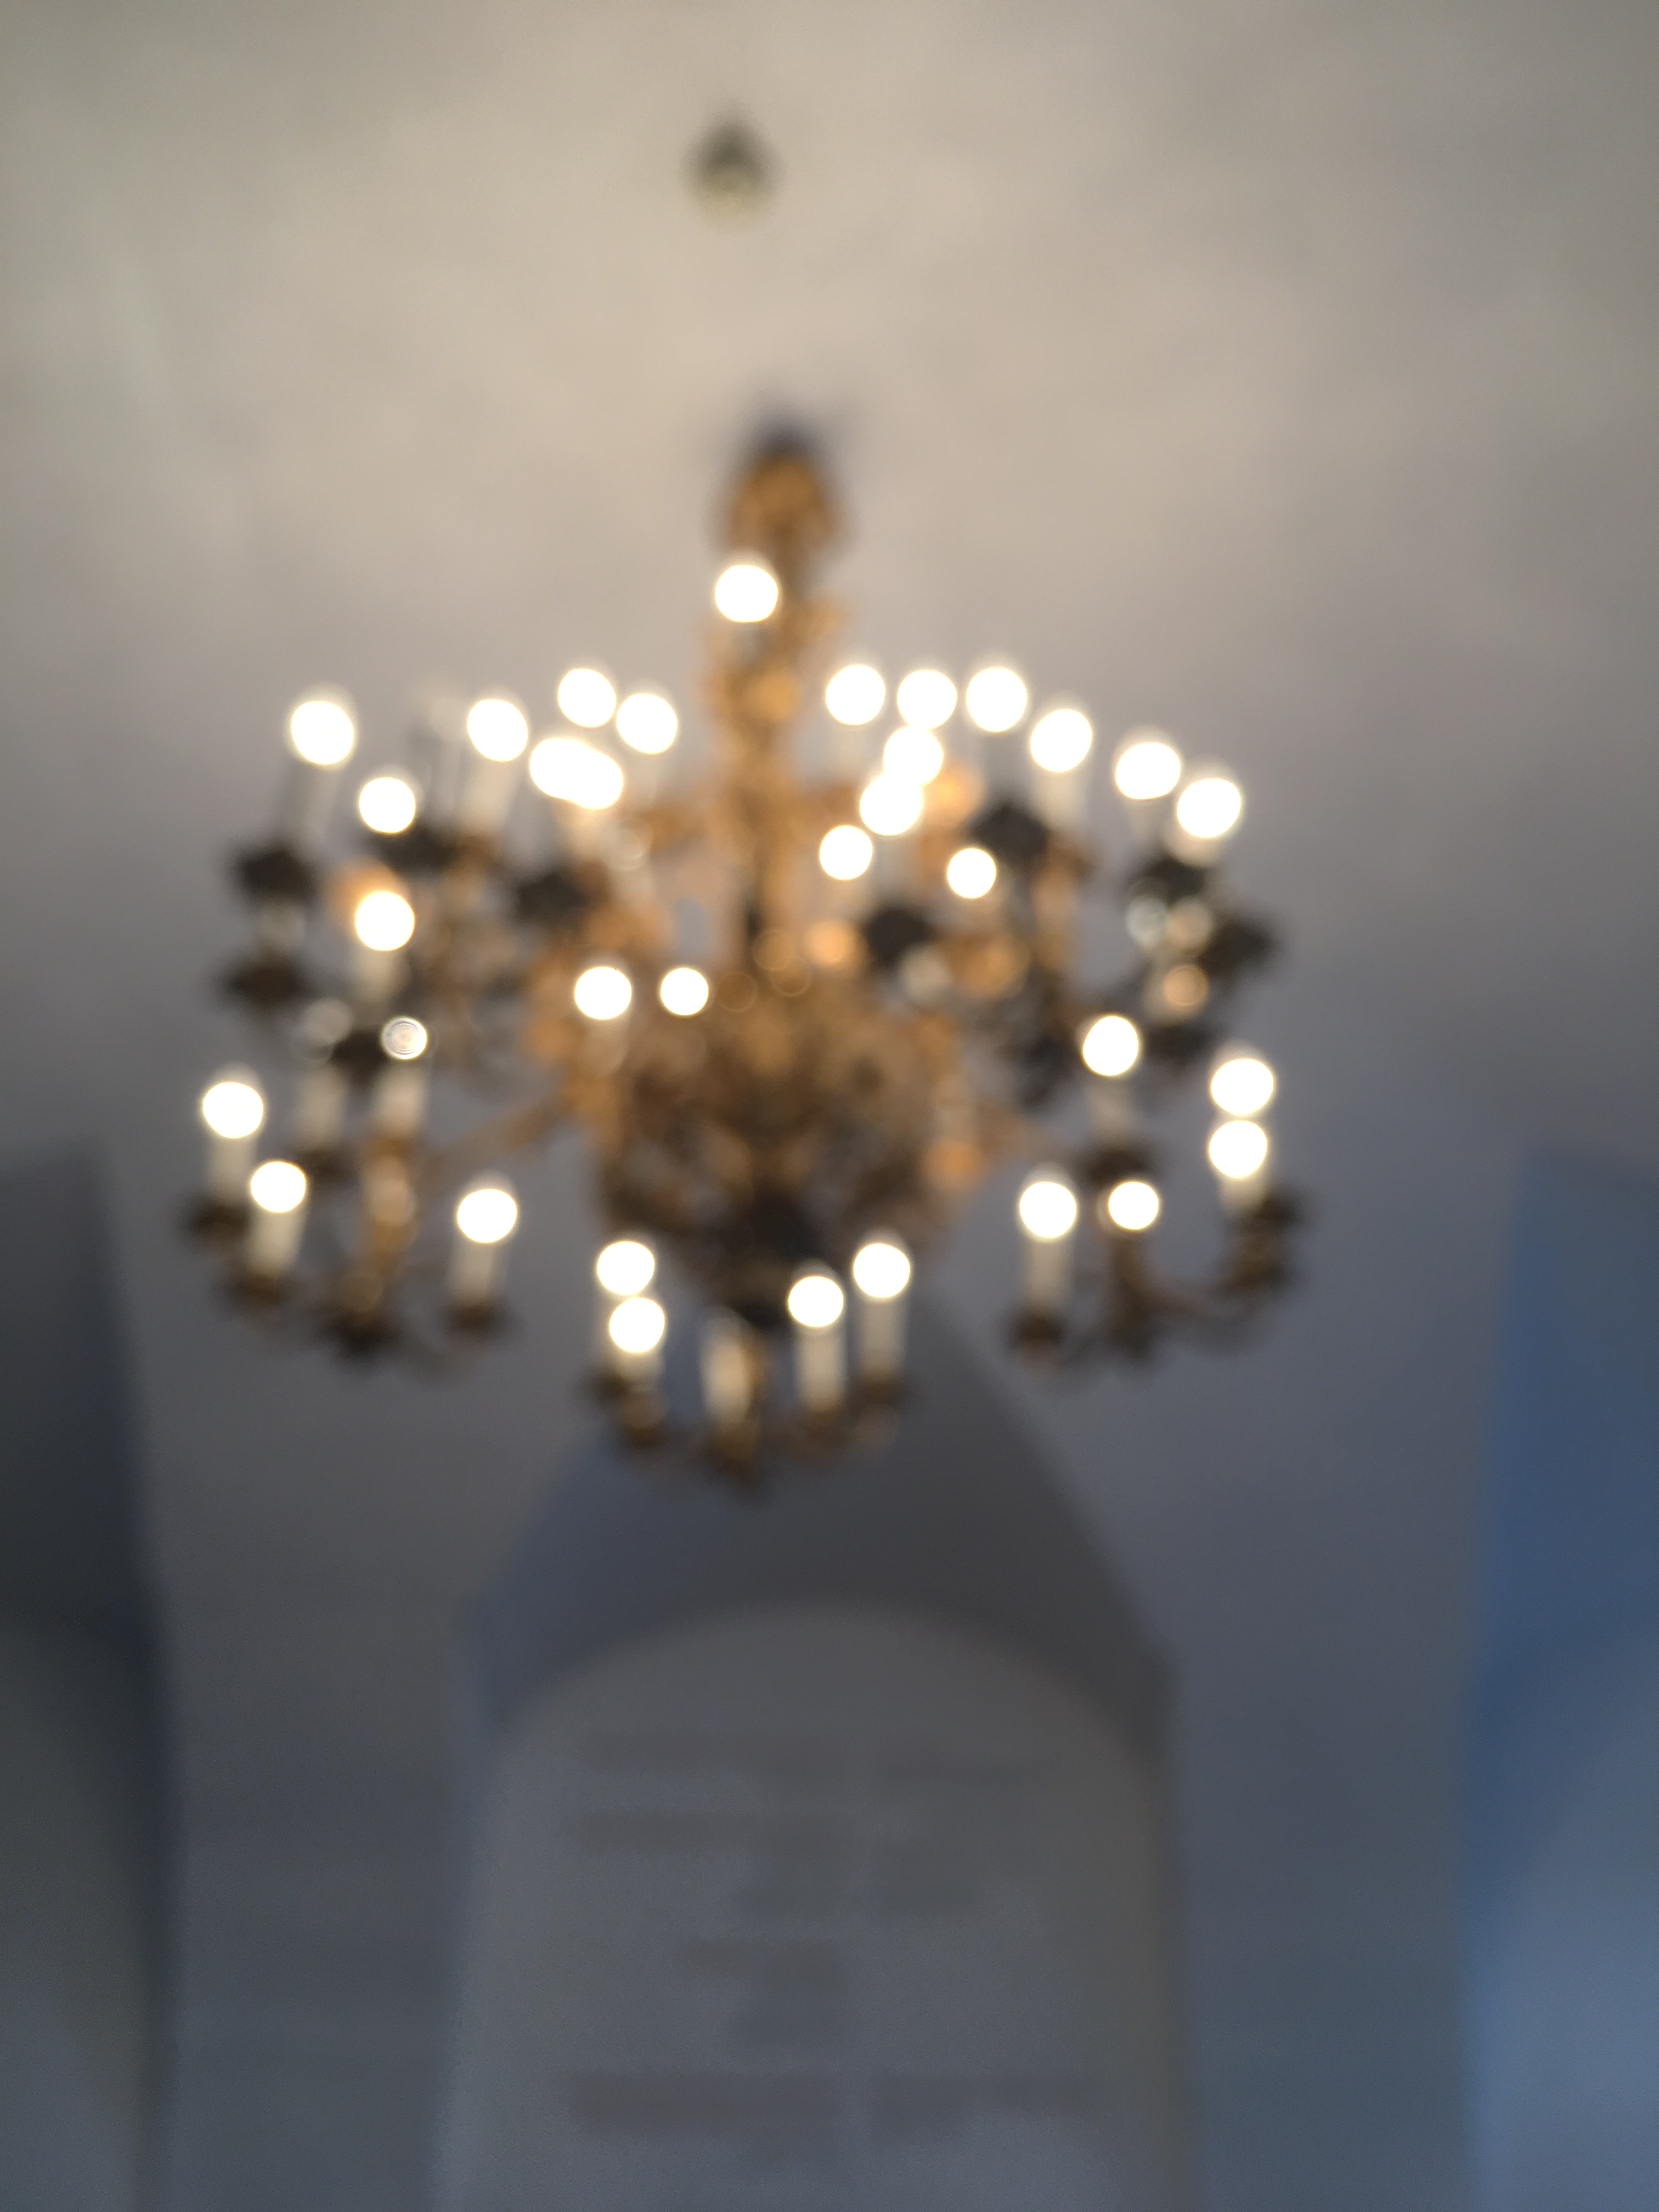 Belvedere-Palace-vienna-austria-europe-museum-chandelier-out-of-focus